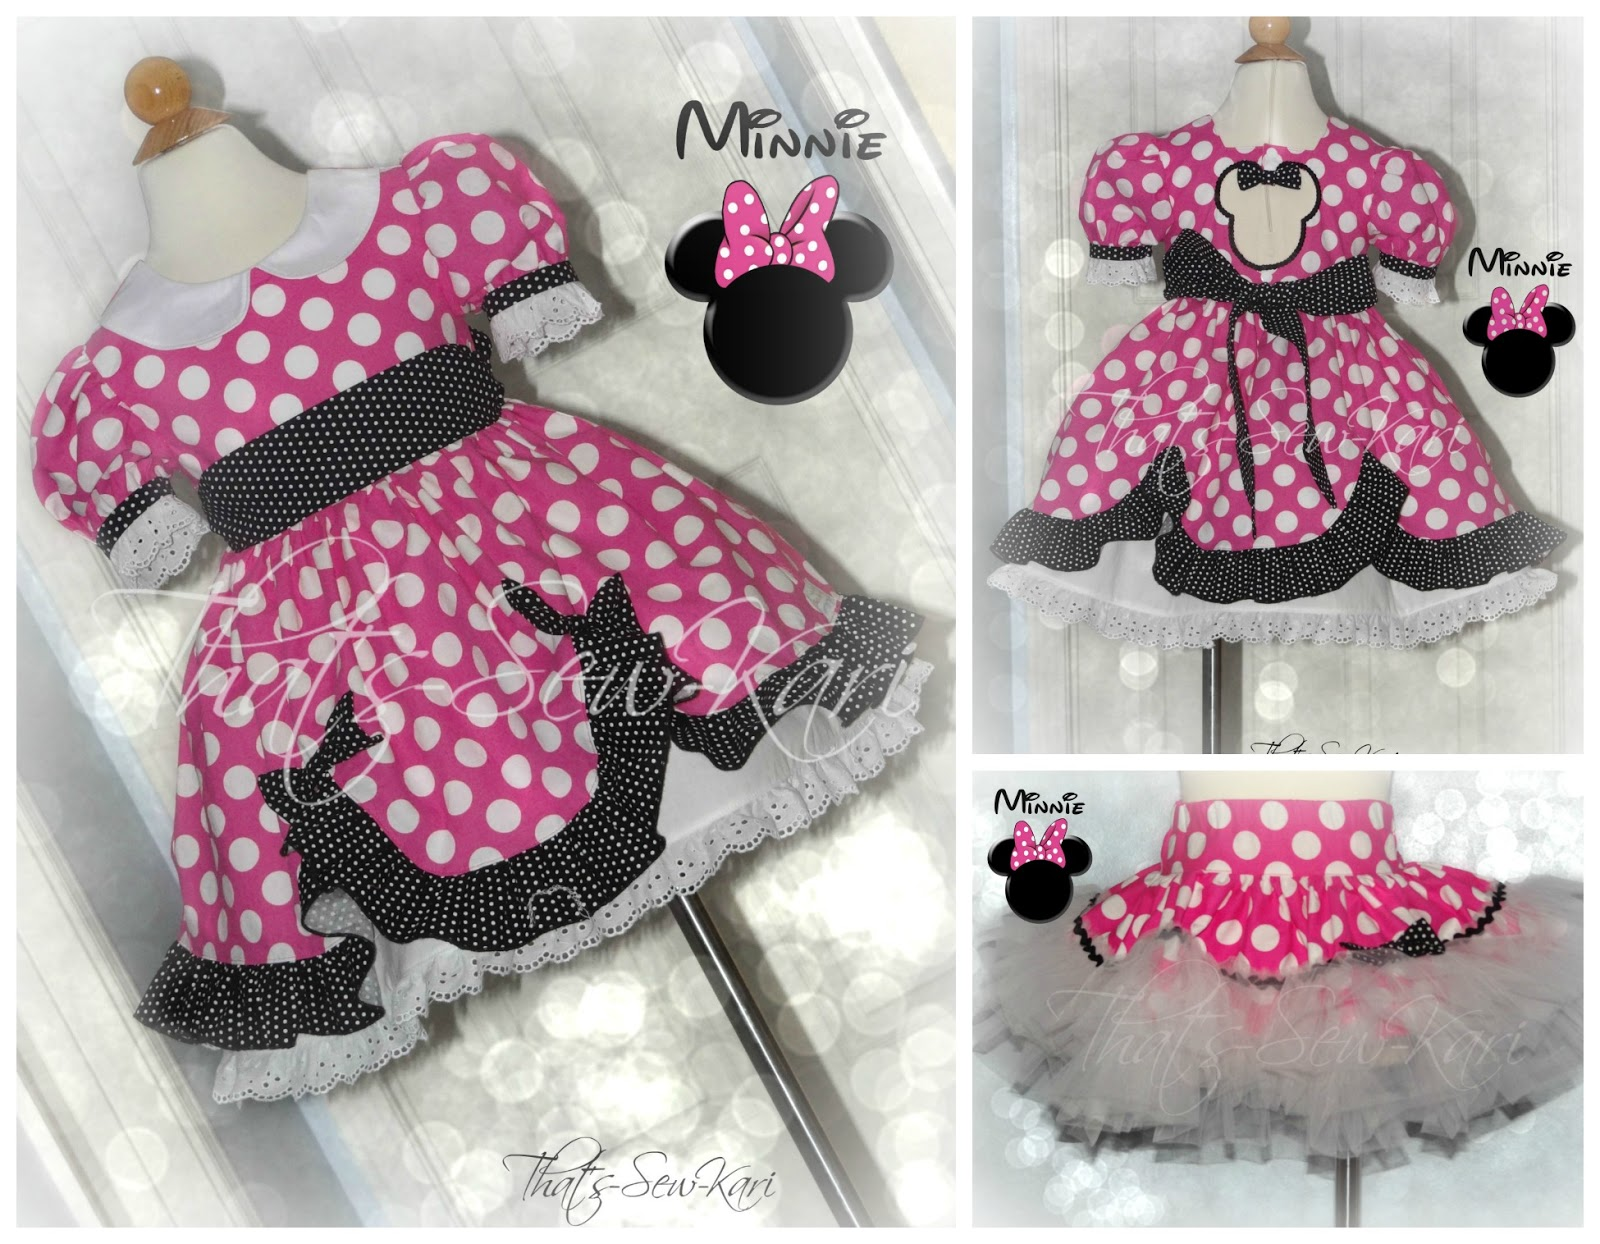 making minnie mouse candy castle princess dress by candy castle